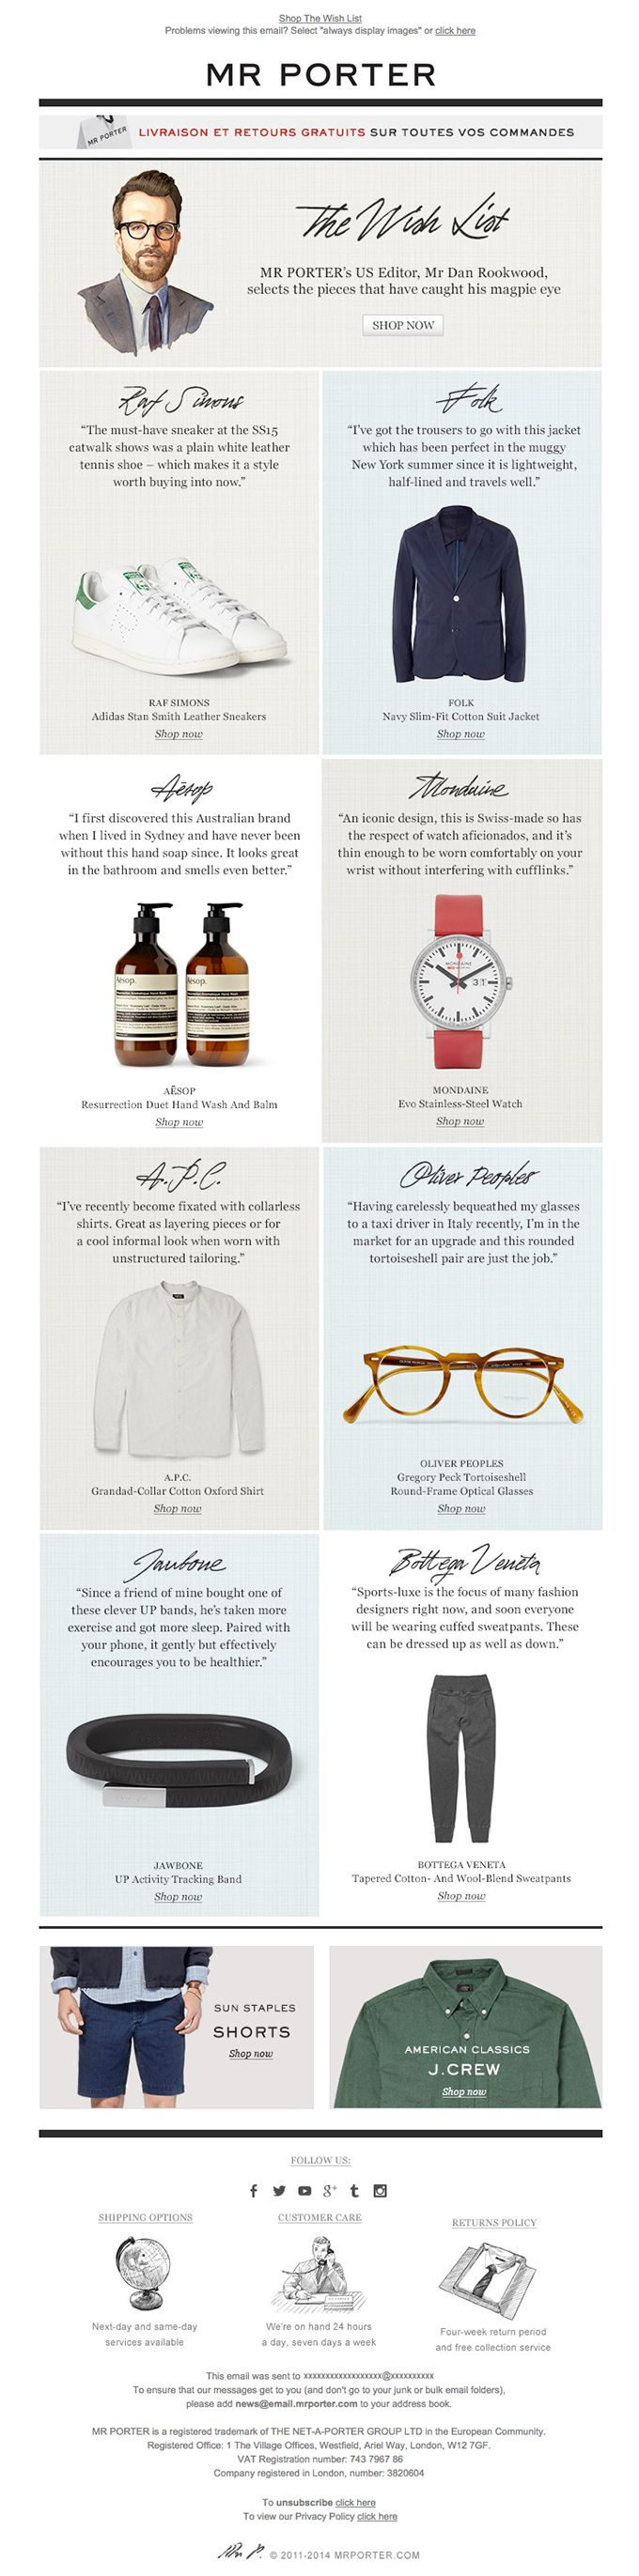 Product-Sale-Email-from-Mr-Porter_680  - reallygoodemails.com